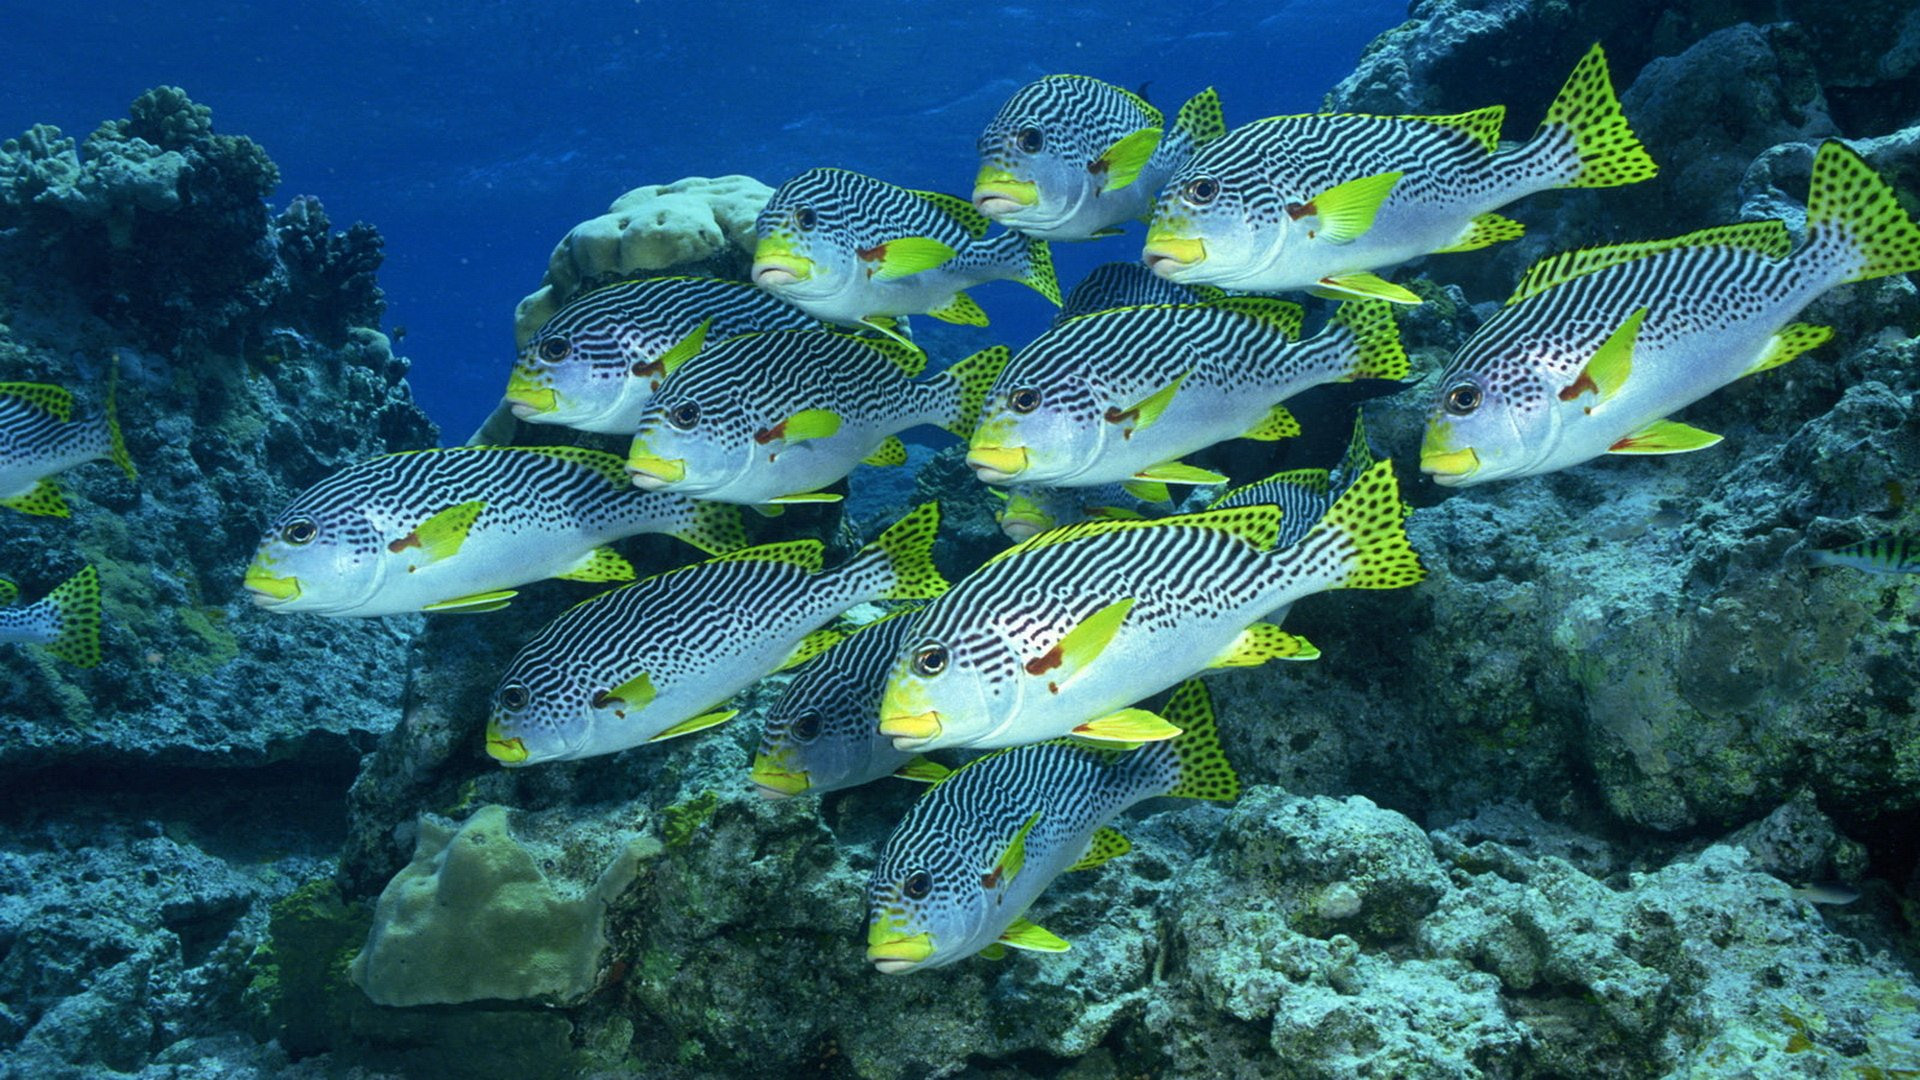 512 Fish HD Wallpapers | Background Images - Wallpaper Abyss